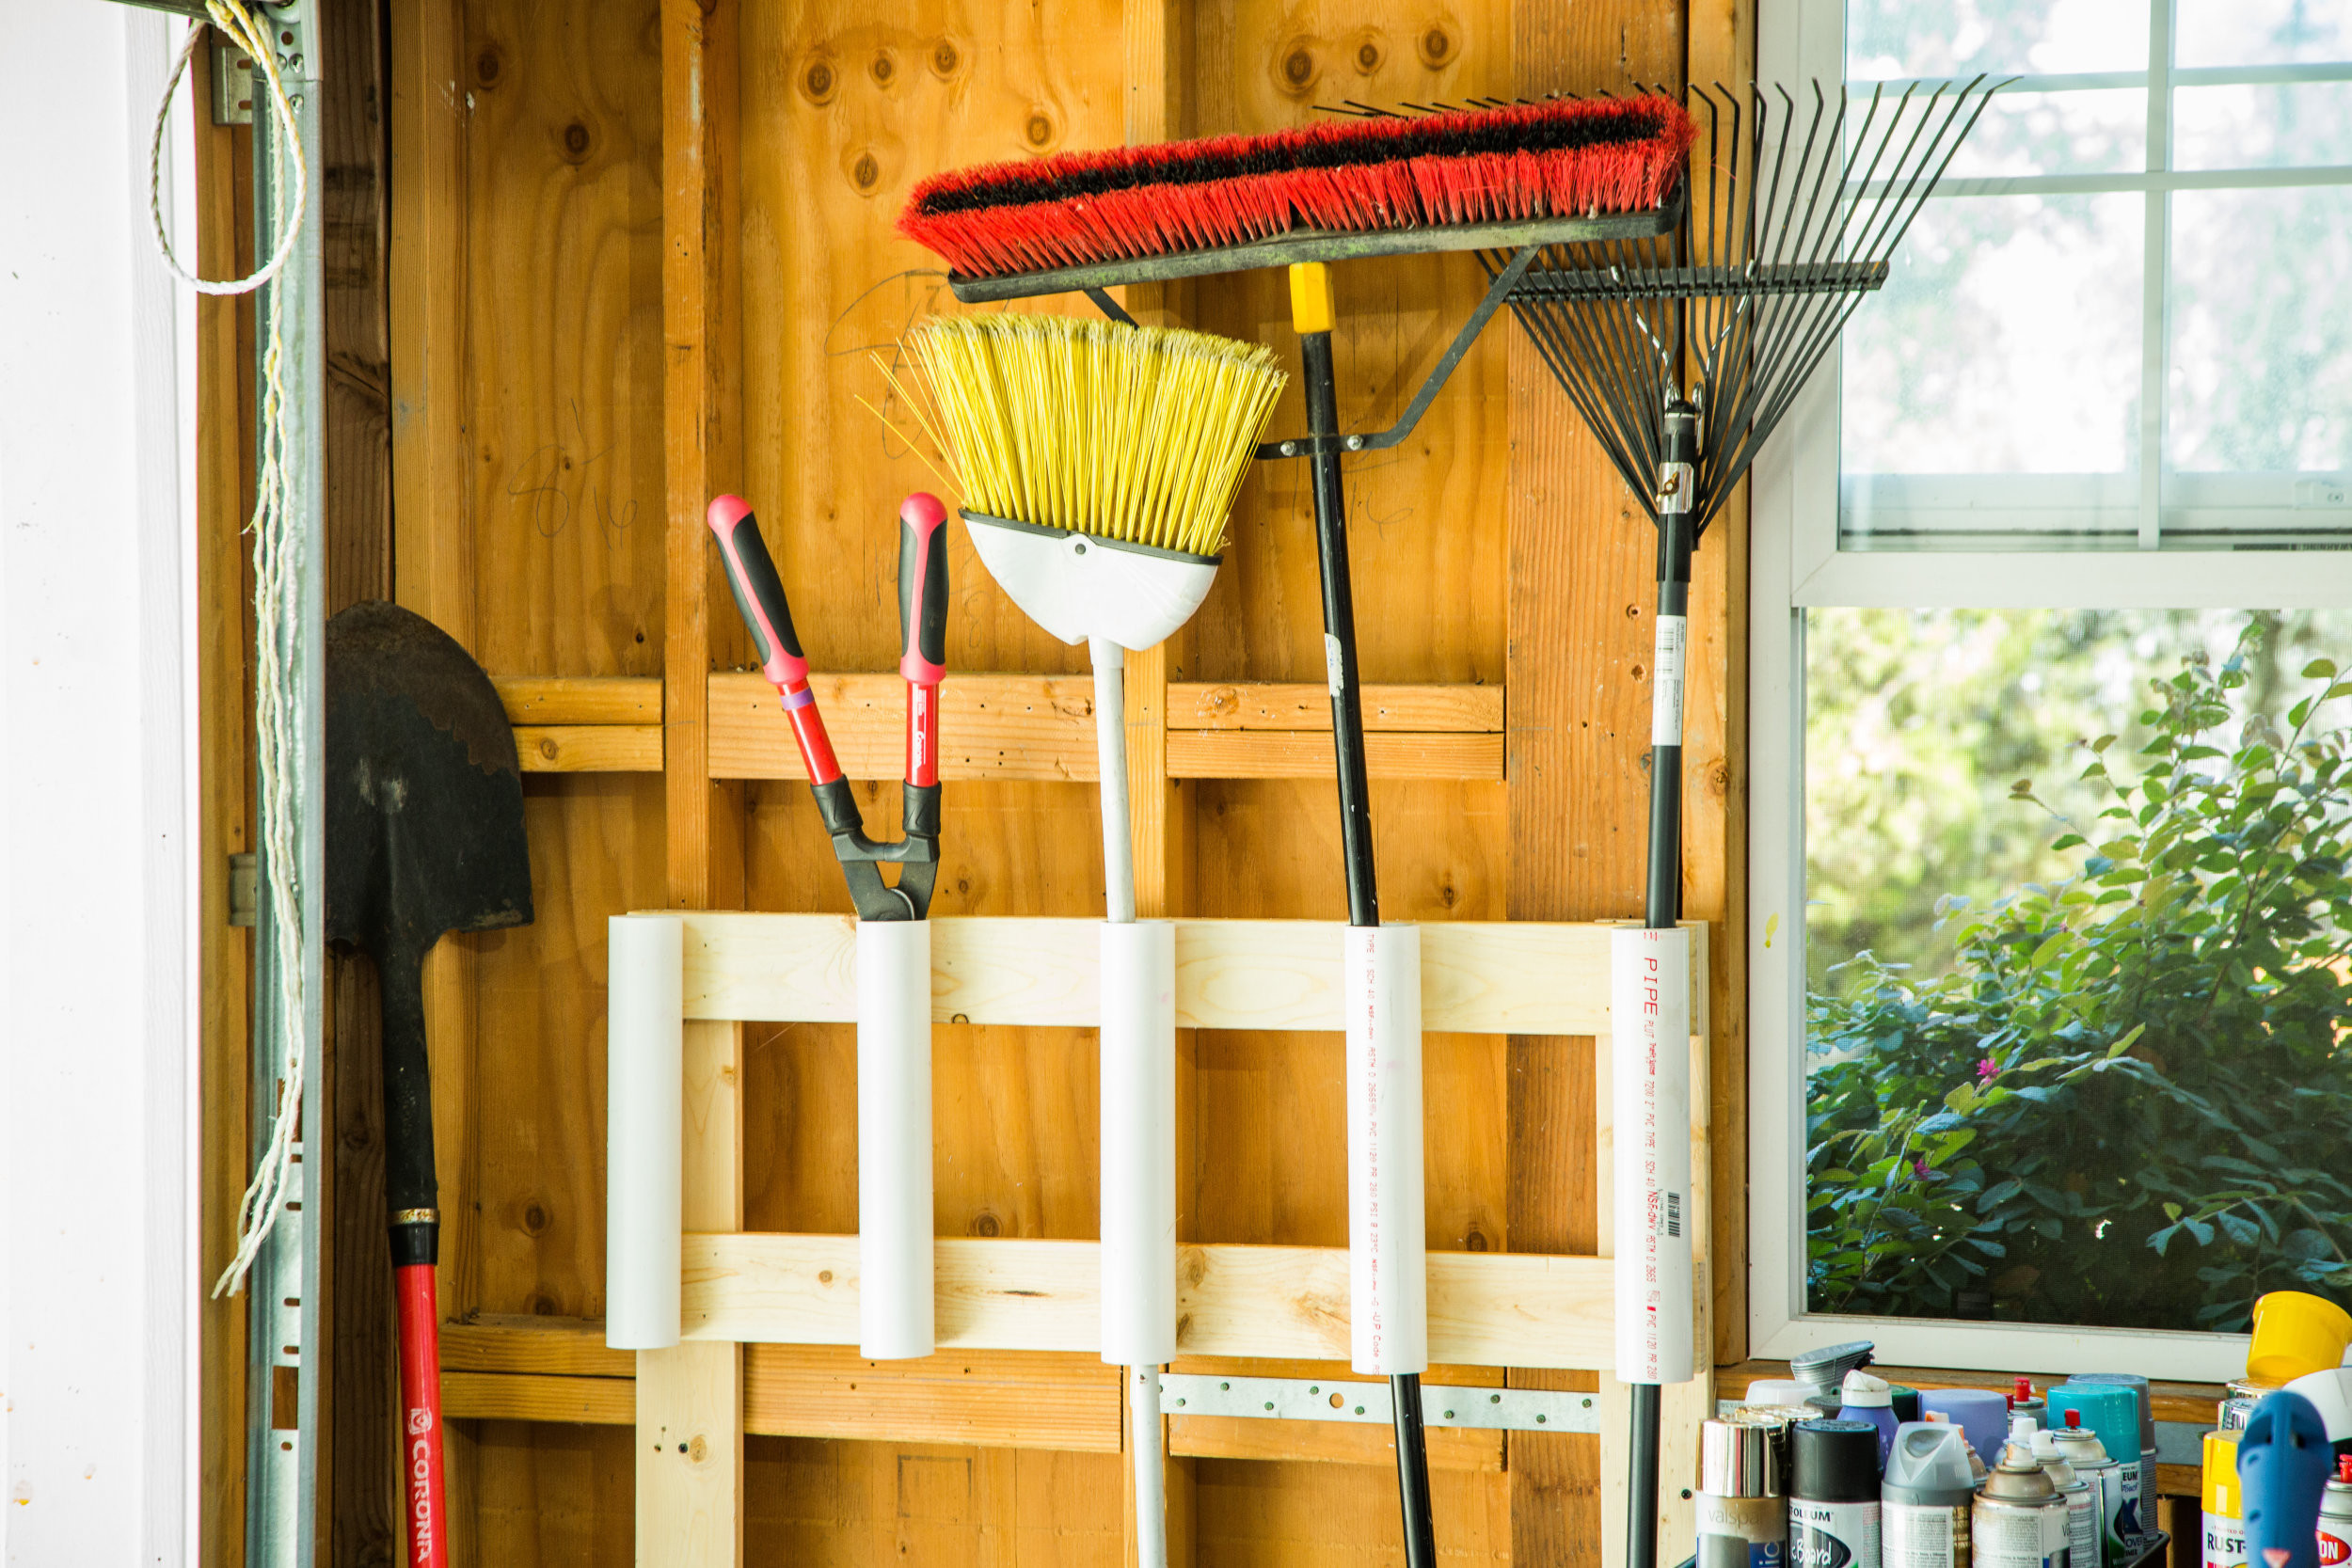 Best ideas about DIY Garden Tool Organizer . Save or Pin How To DIY Garden Tool Organizer Now.